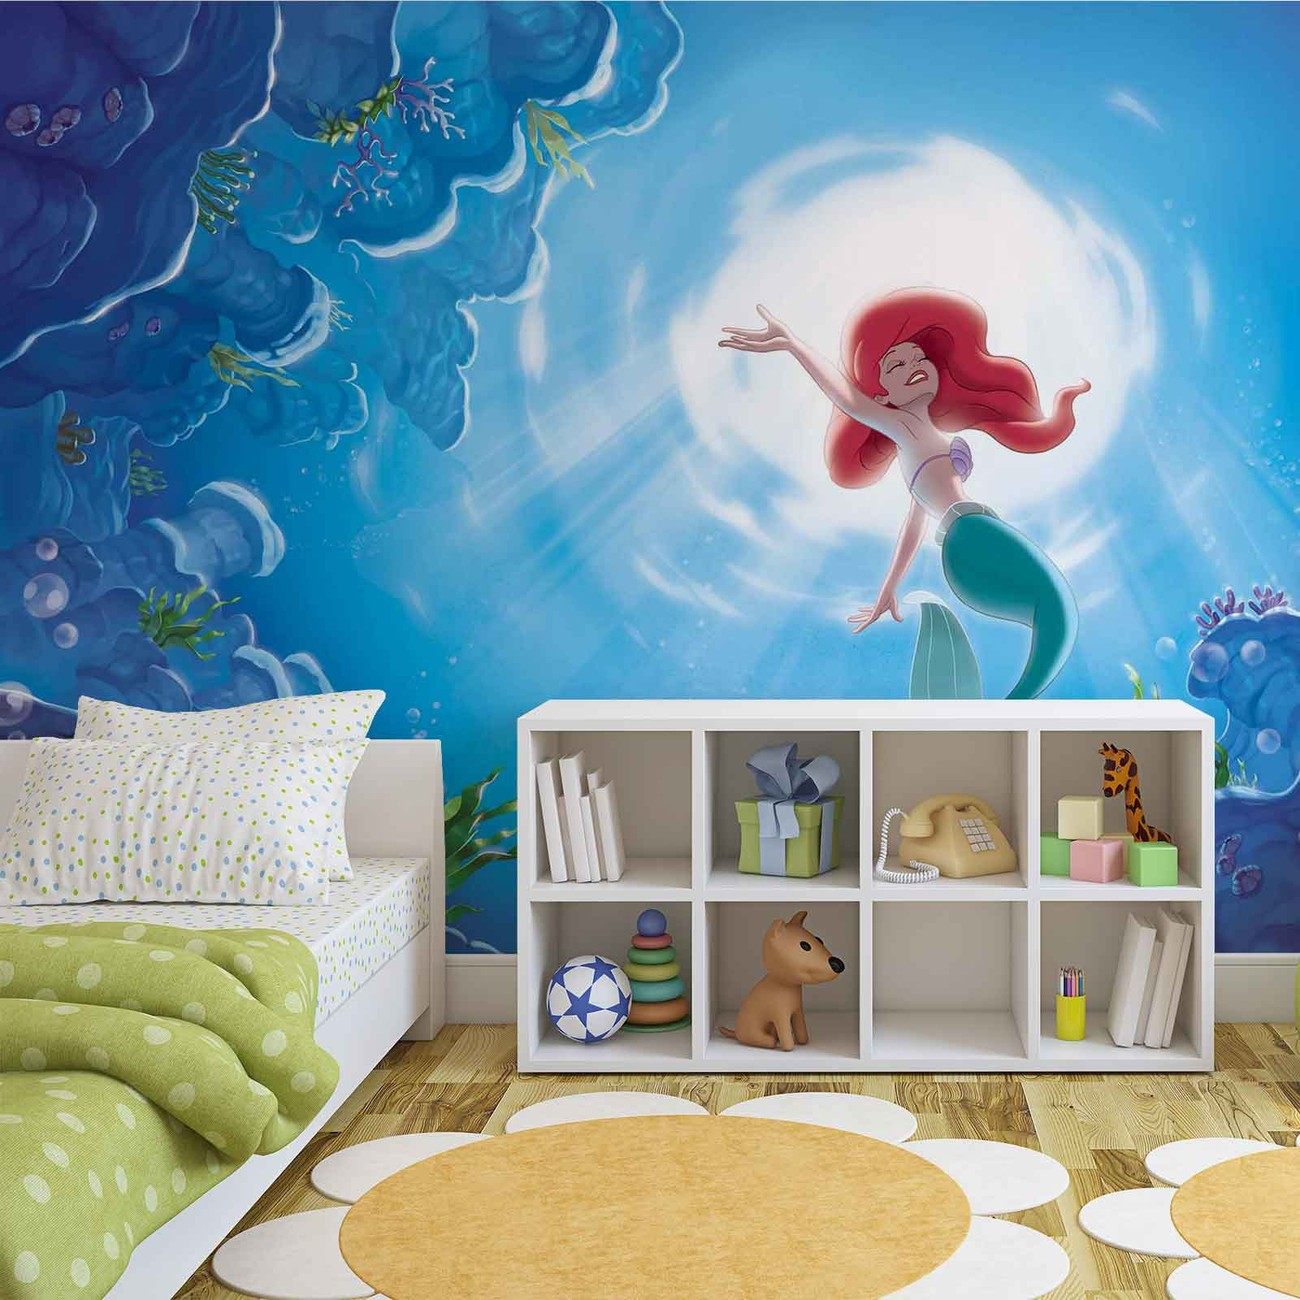 Disney little mermaid ariel wall paper mural buy at europosters disney little mermaid ariel wallpaper mural amipublicfo Images